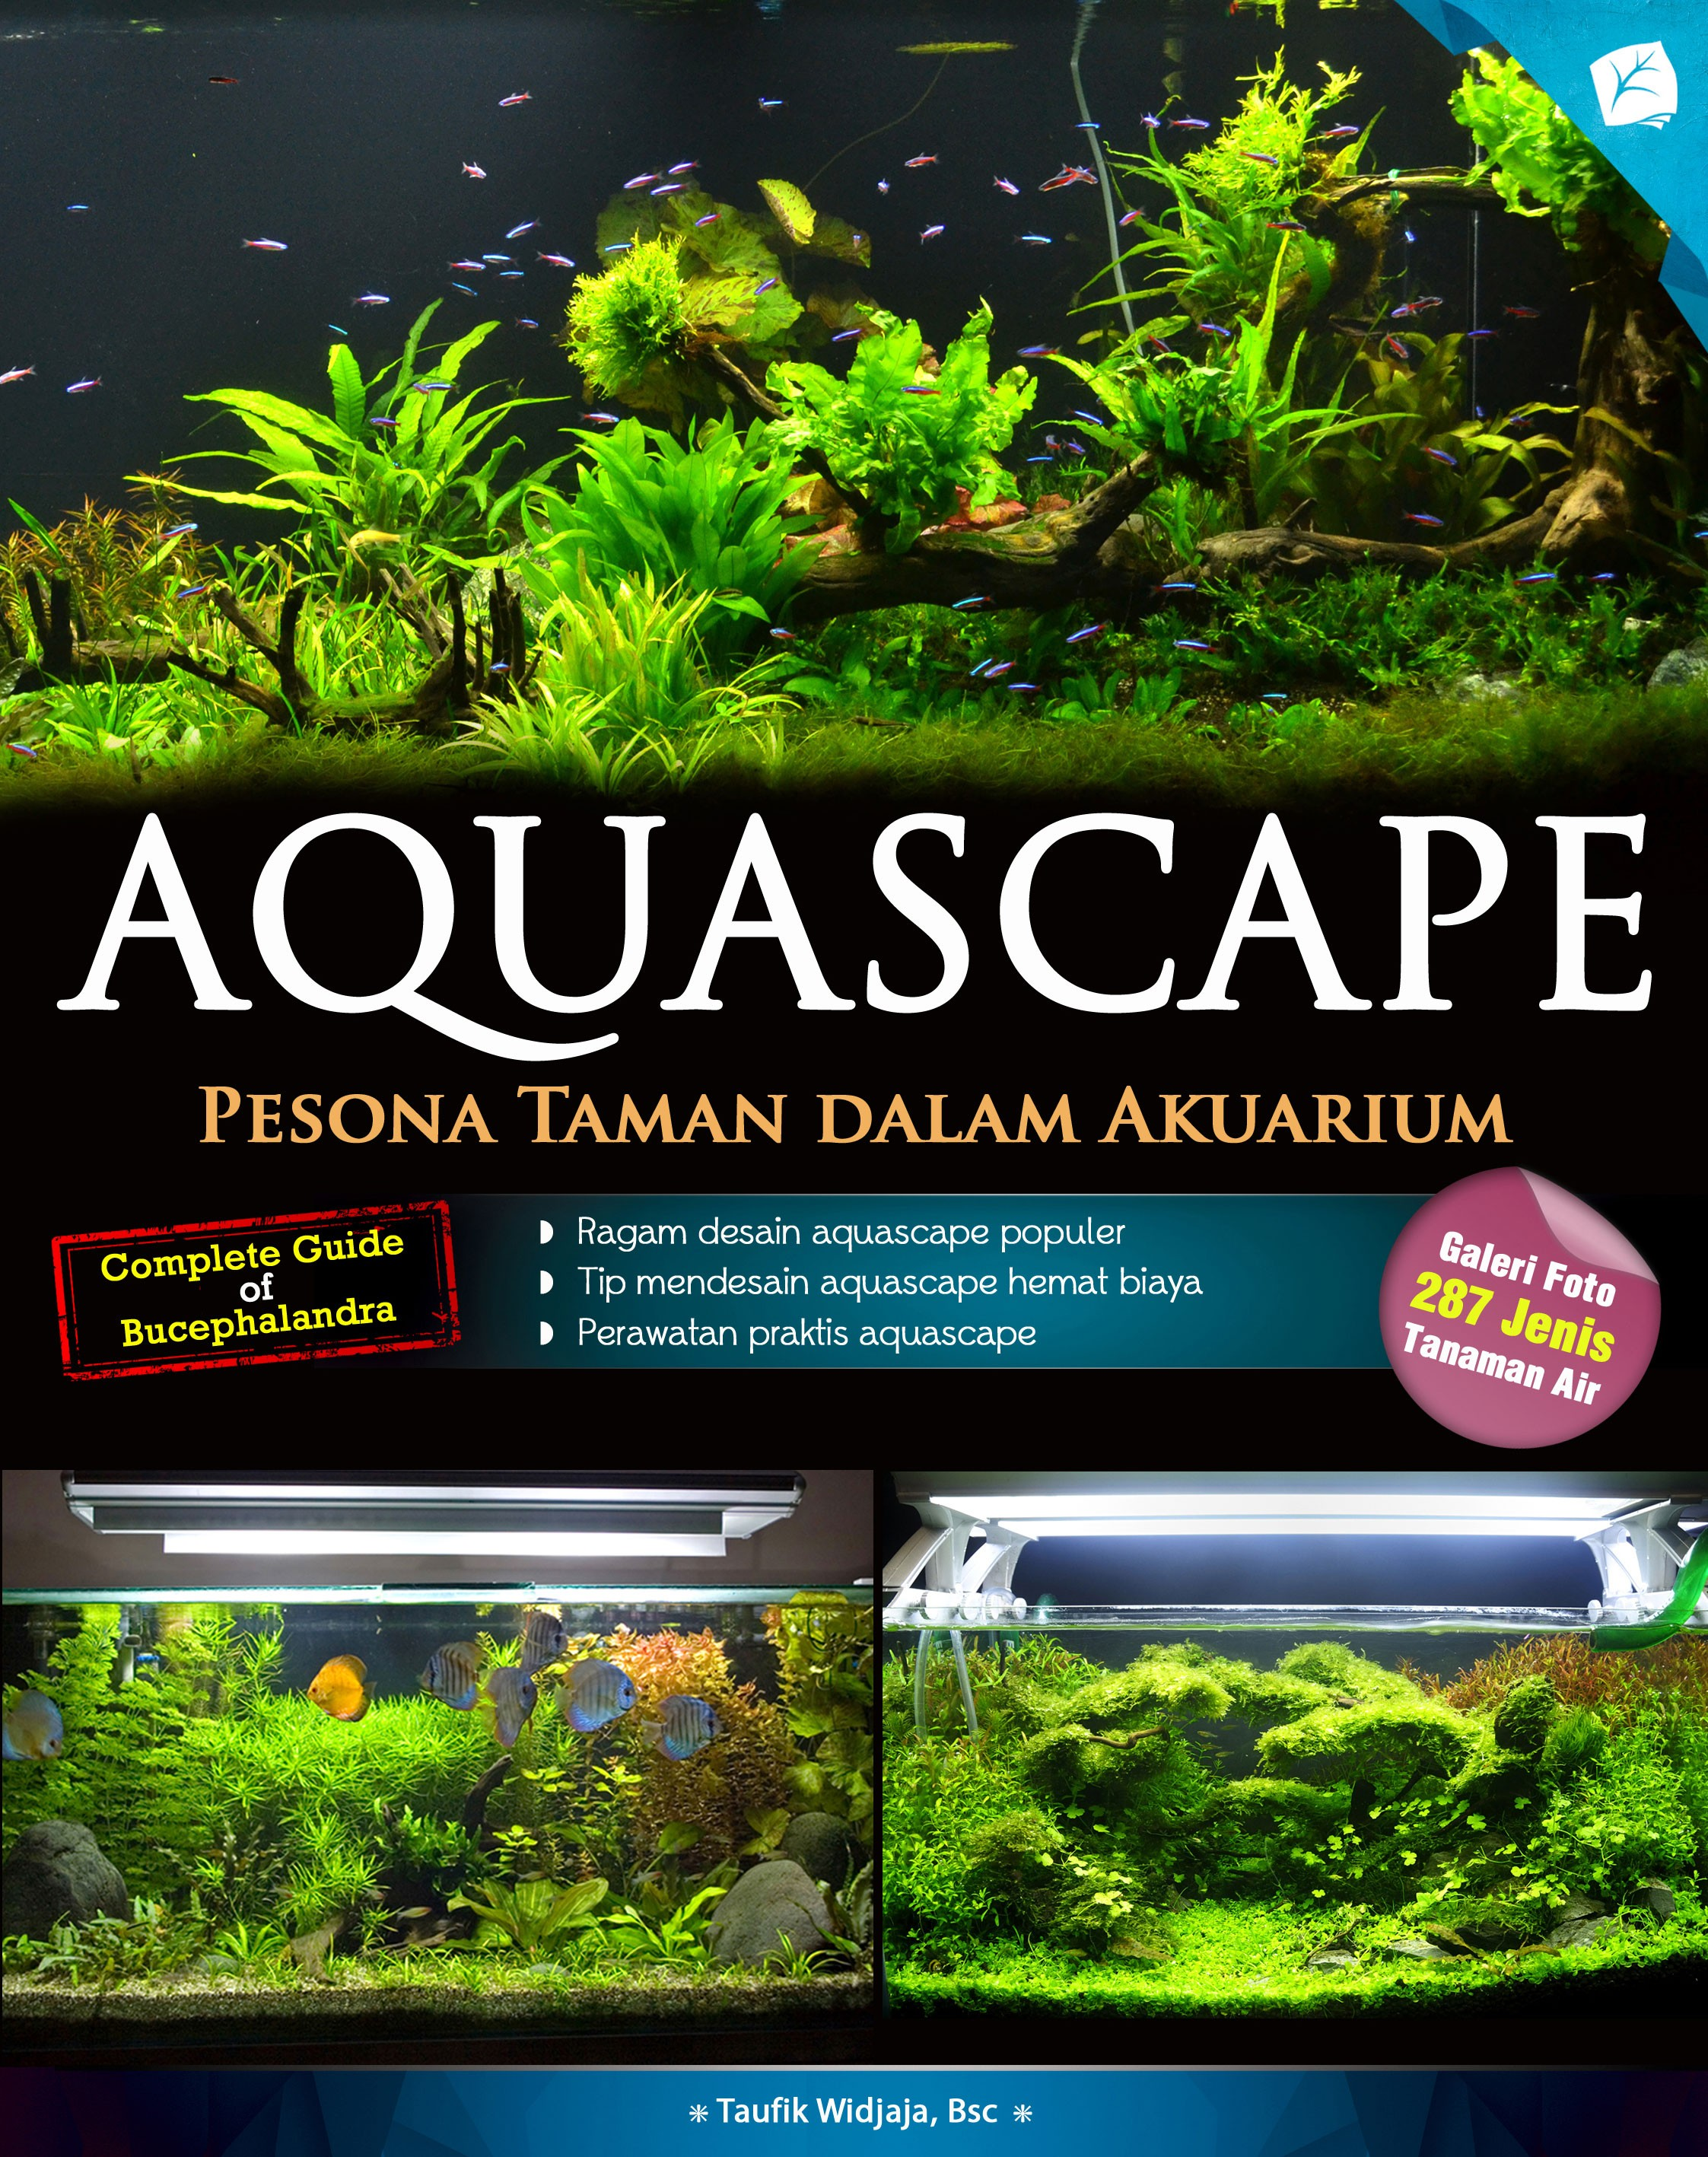 Aquascape revisi 2015